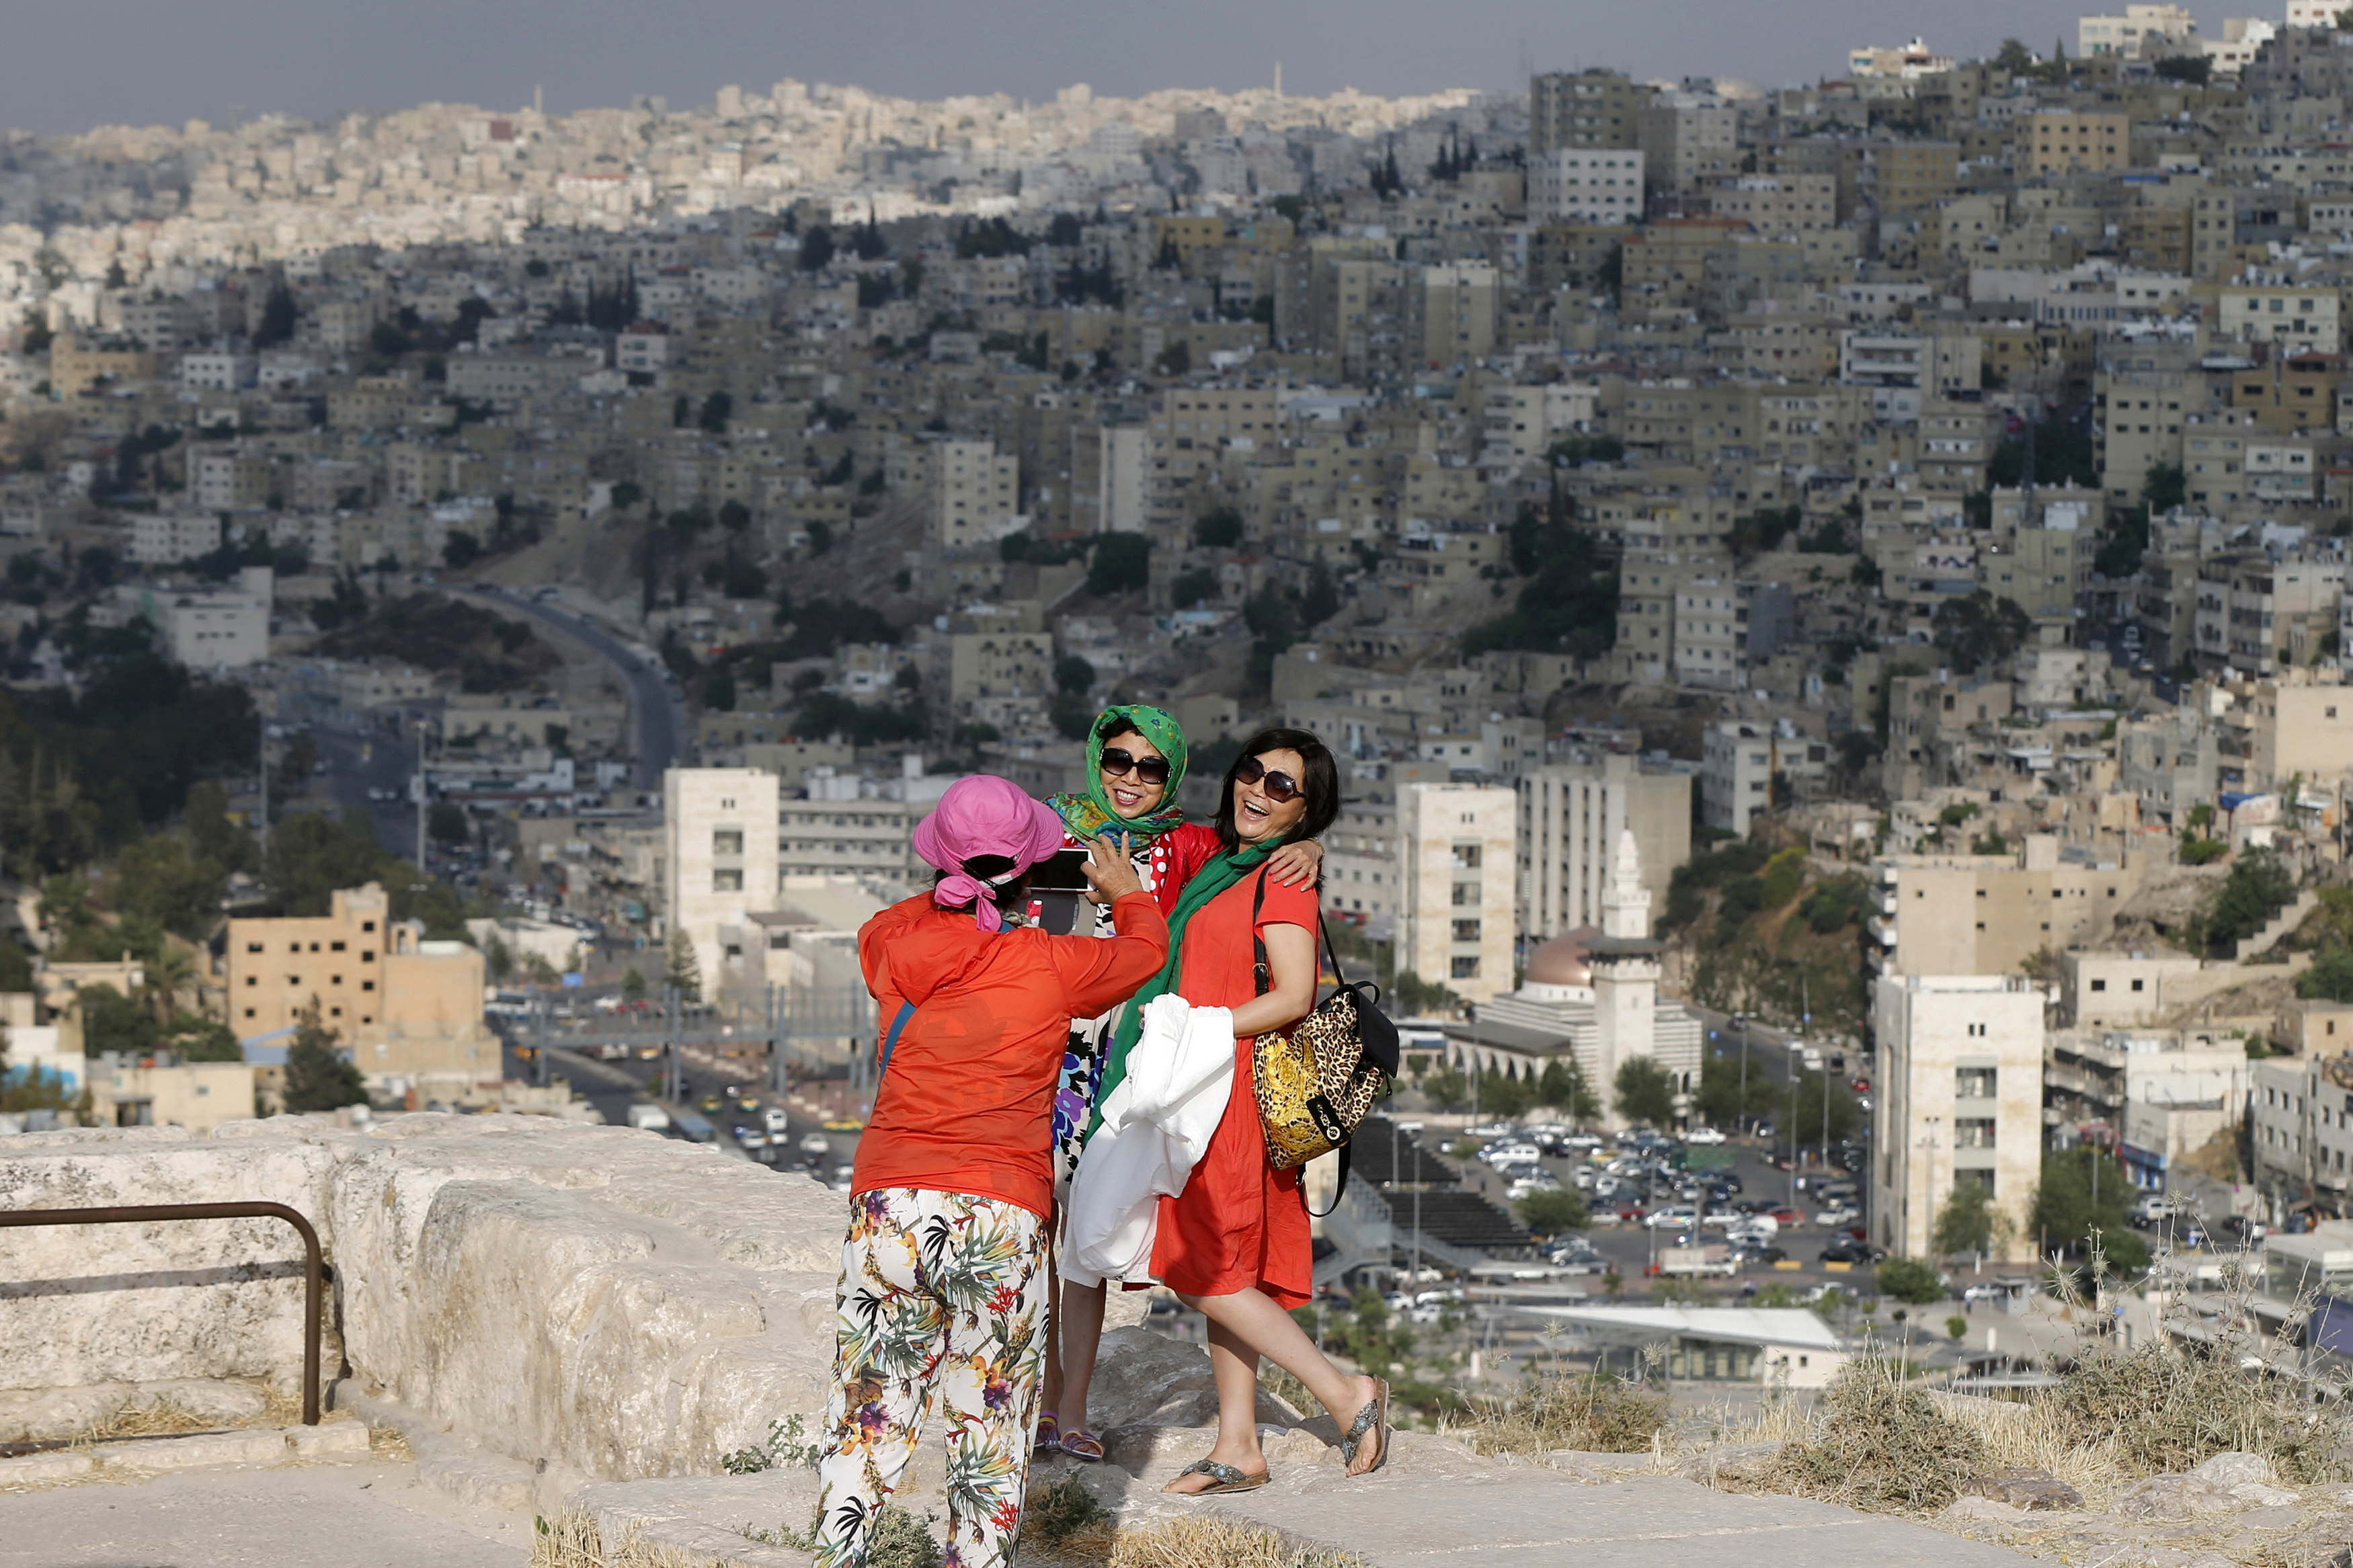 Chinese tourists take pictures during their visit to the Amman Citadel, an ancient Roman landmark in Amman, on May 23, 2016